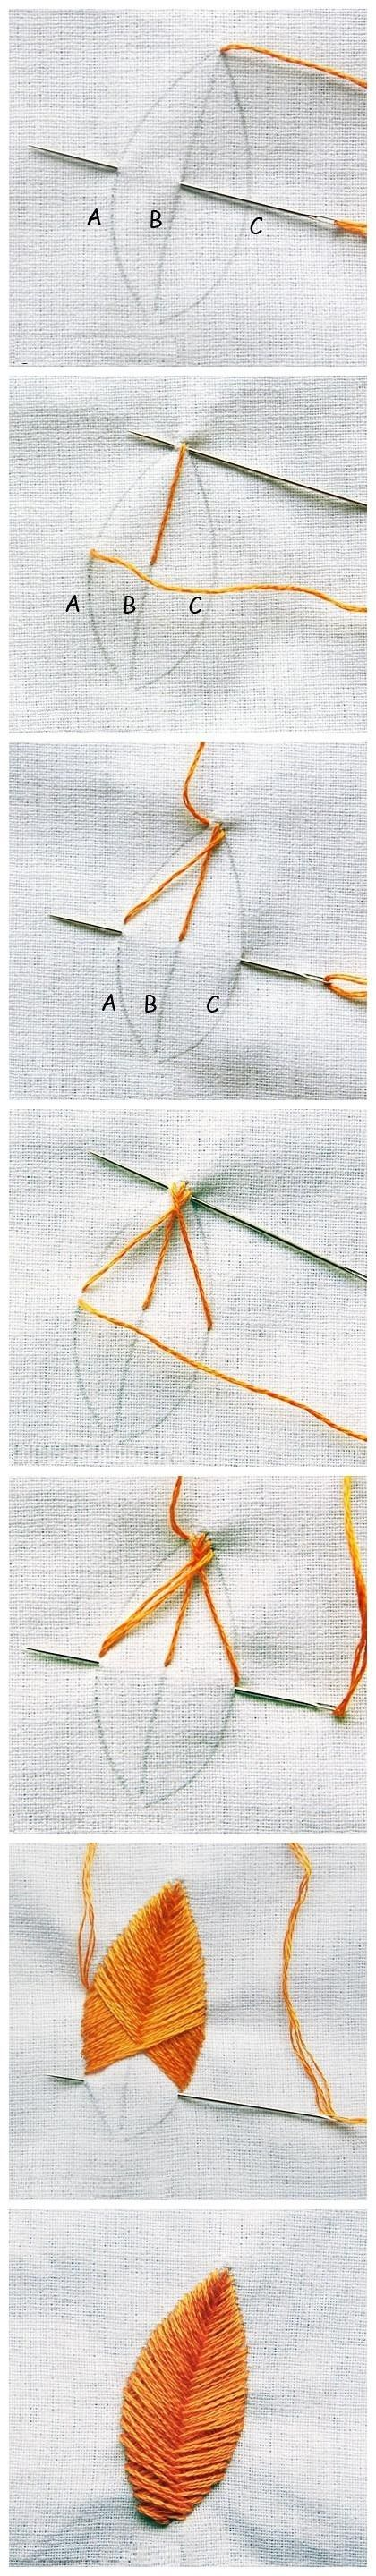 Embroidery tutorial for making a gorgeous leaf. Saw these in Sew Beautiful a few years ago and they're easy and gorgeous once you get the hang of it!